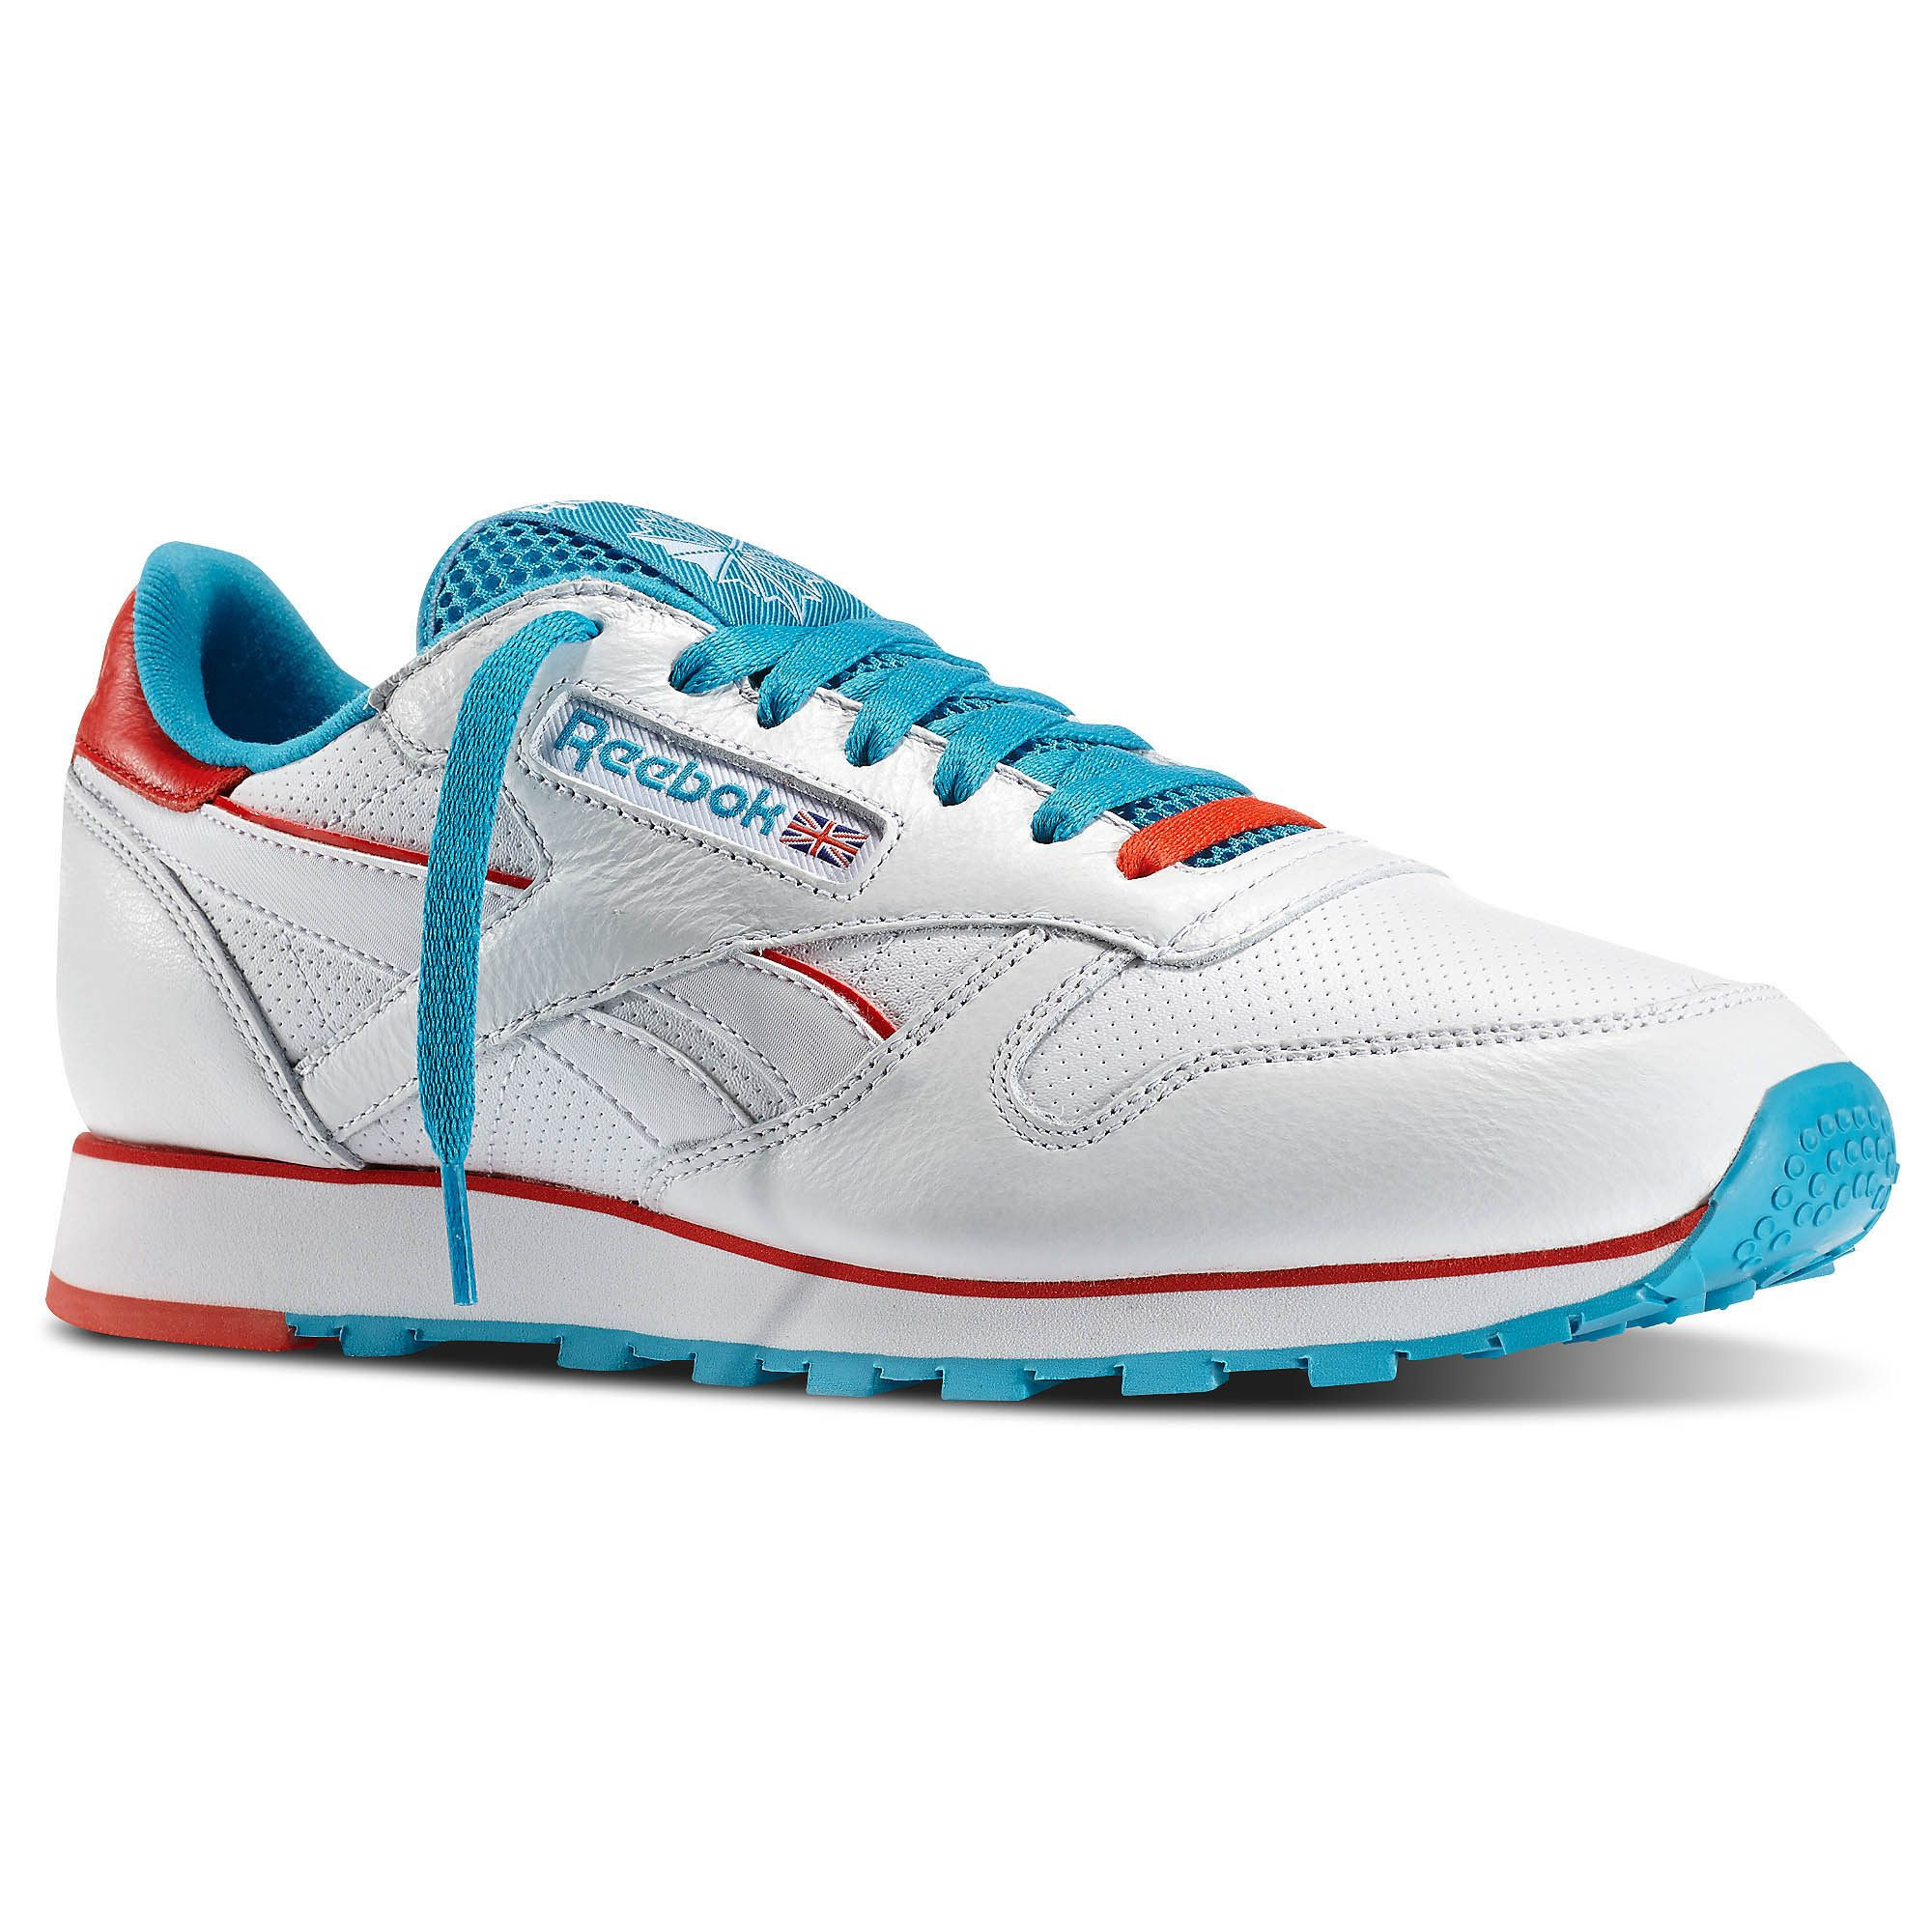 Reebok-Sports-shoes-and-running-shoes-for-men (12)